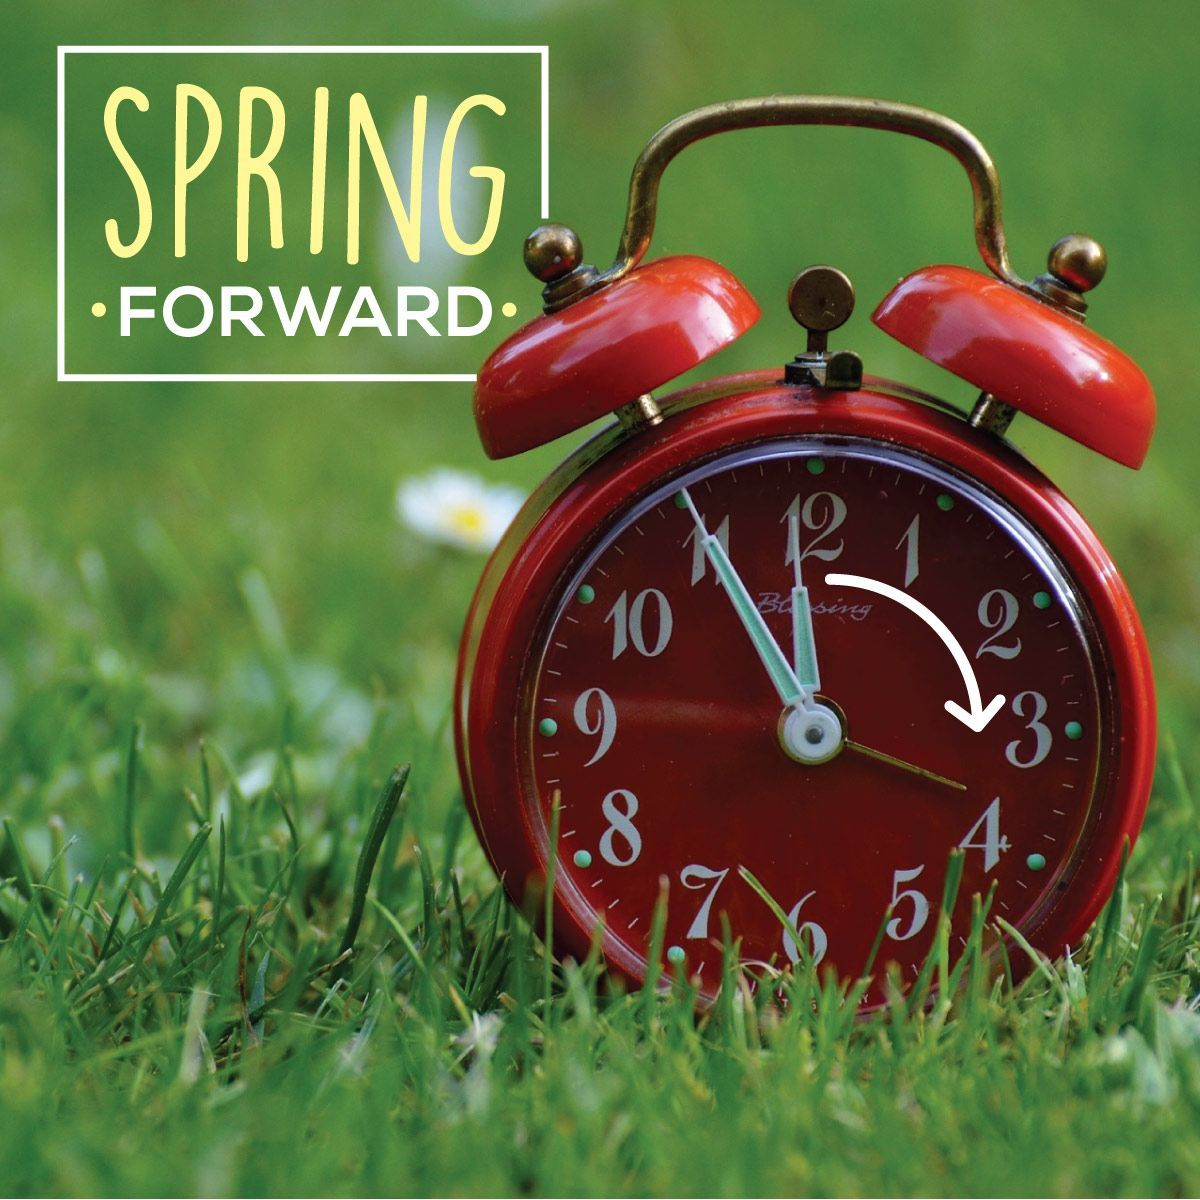 Just A Friendly Reminder To Move Your Clocks Ahead This